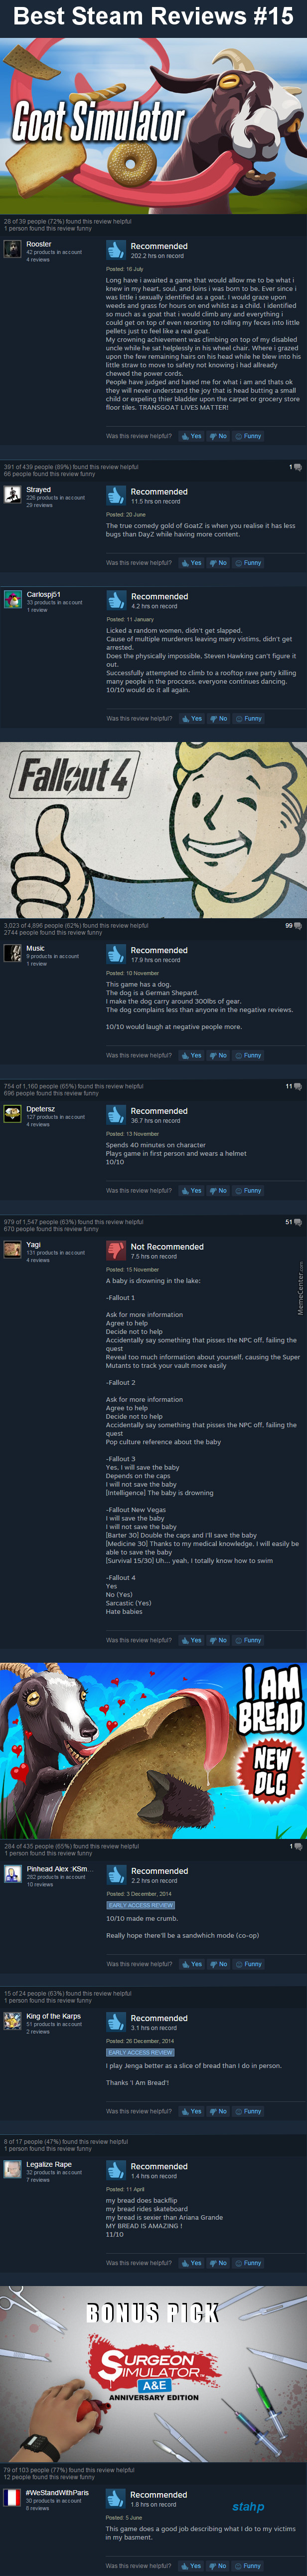 Best Steam Reviews #15 - The One With Fallout 4 In It by